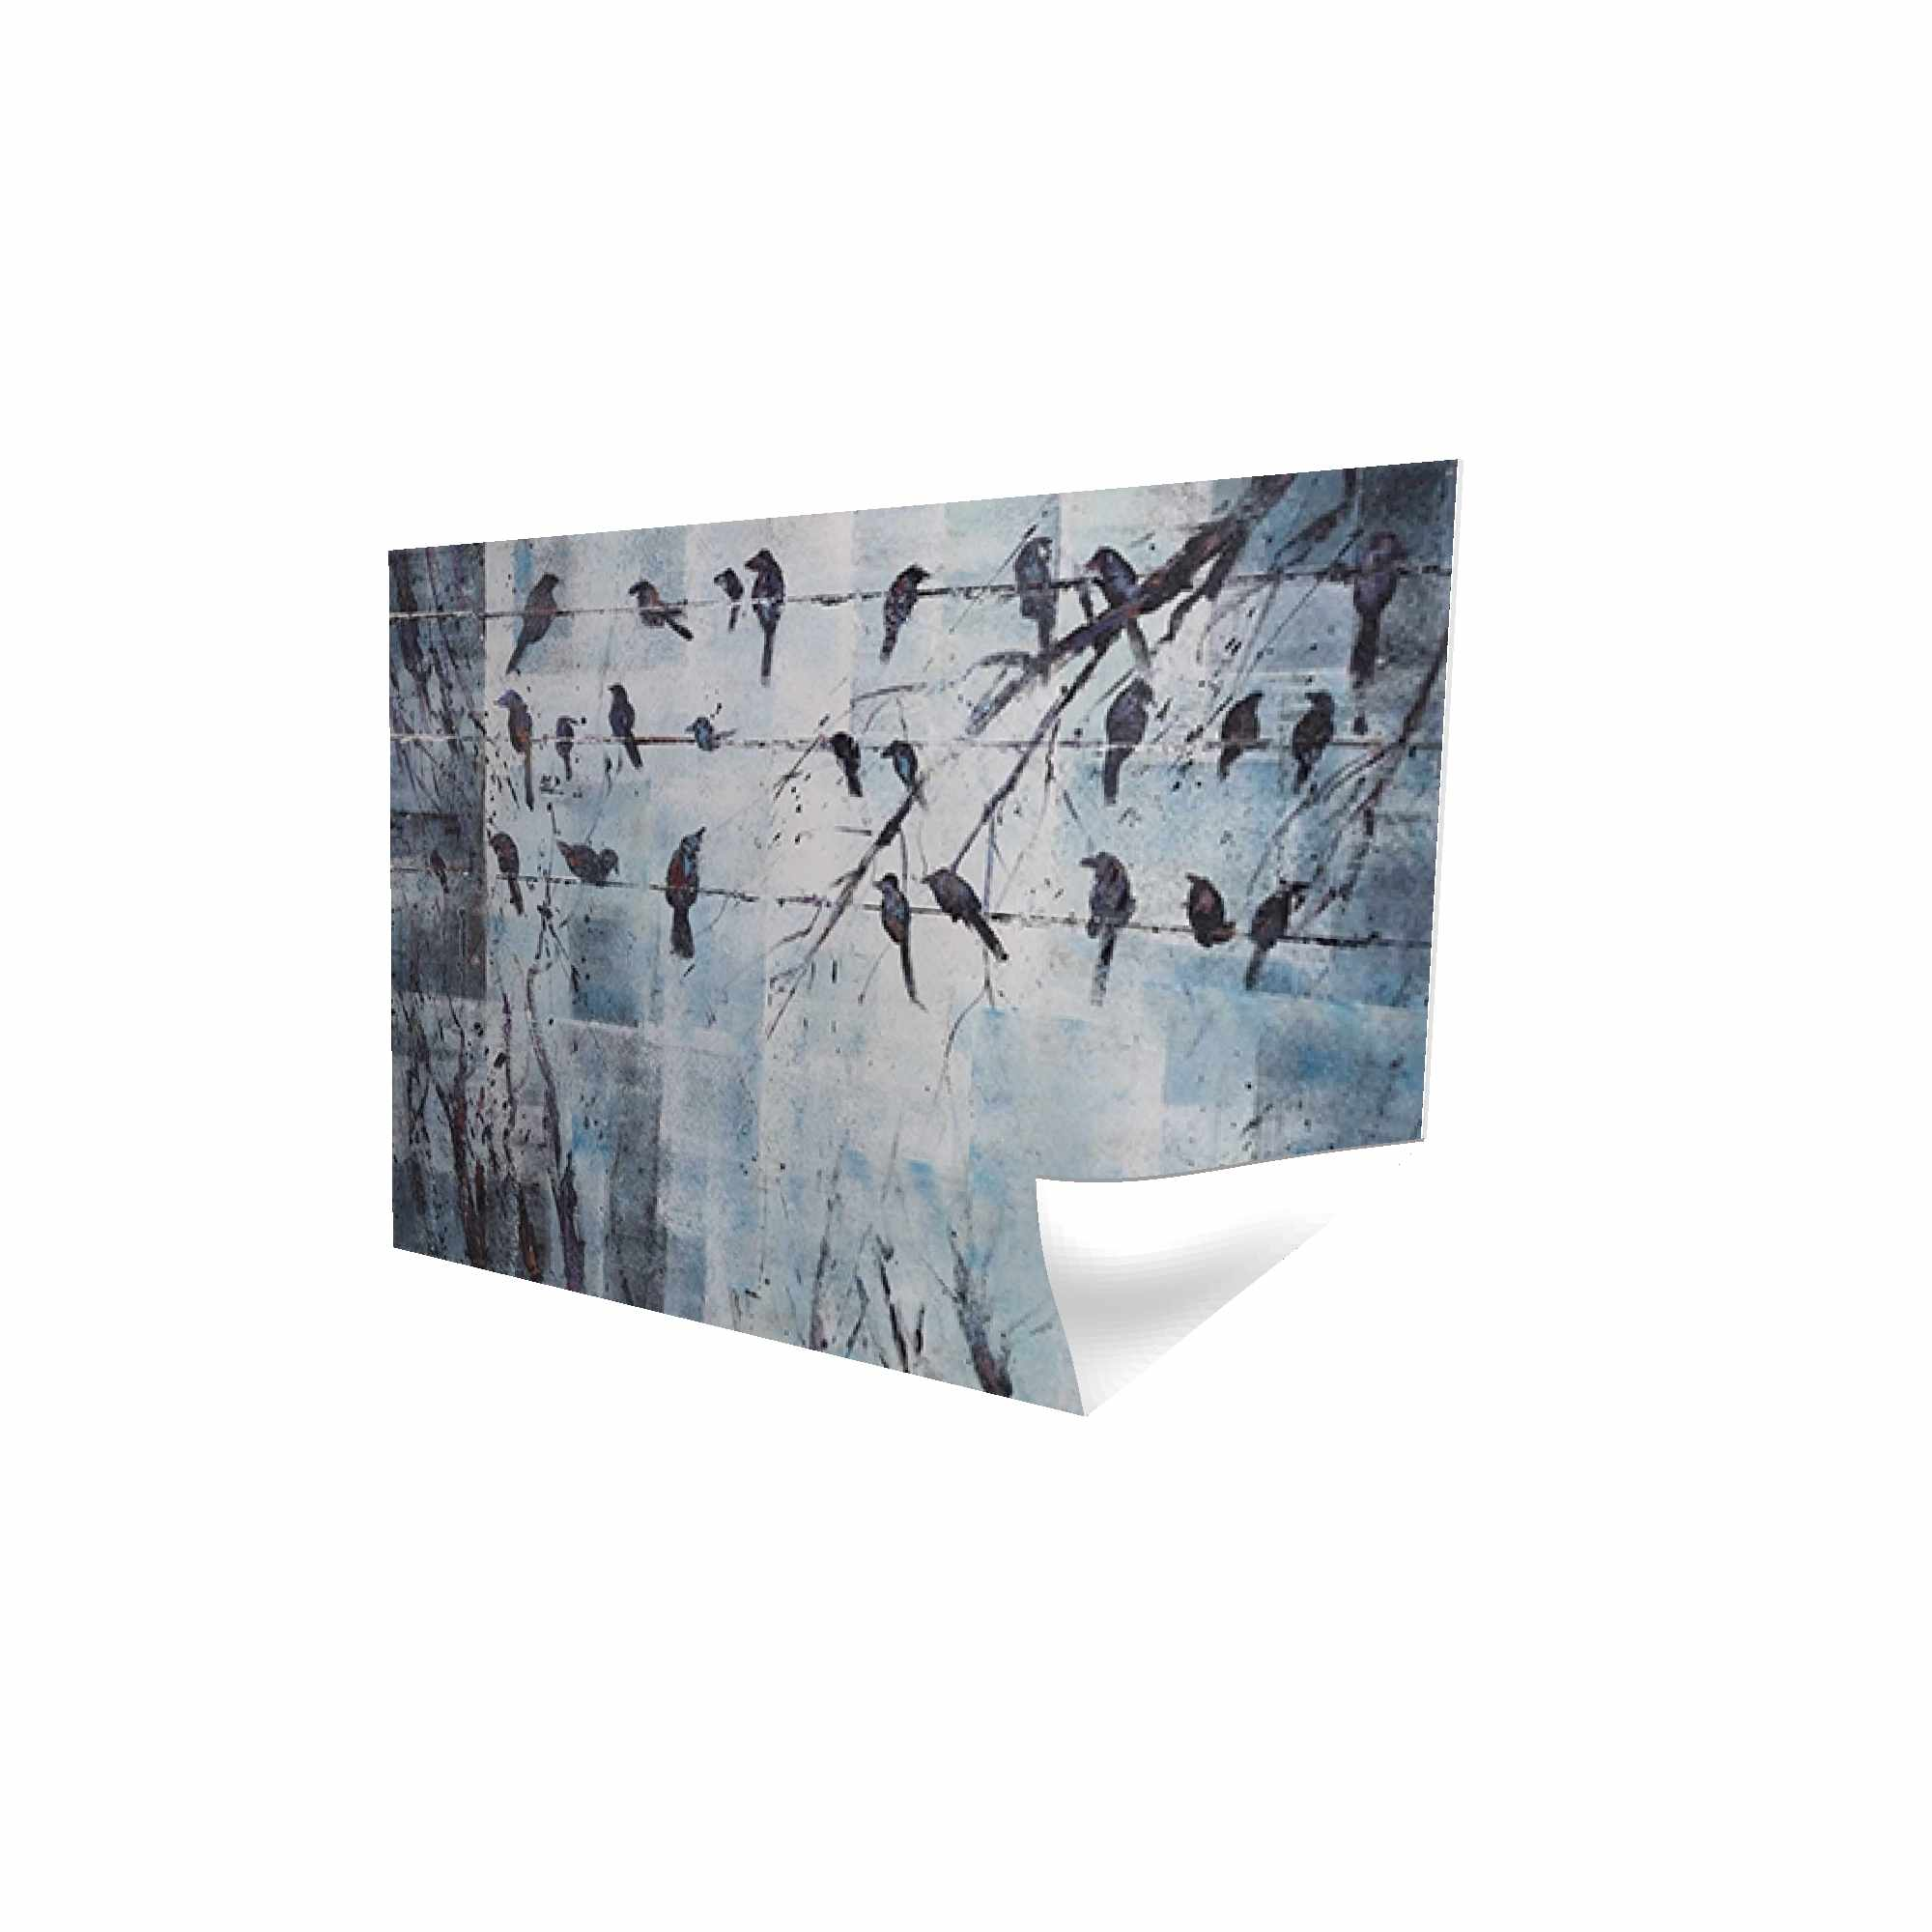 Poster 24 x 36 - 3D - Abstract birds on electric wire